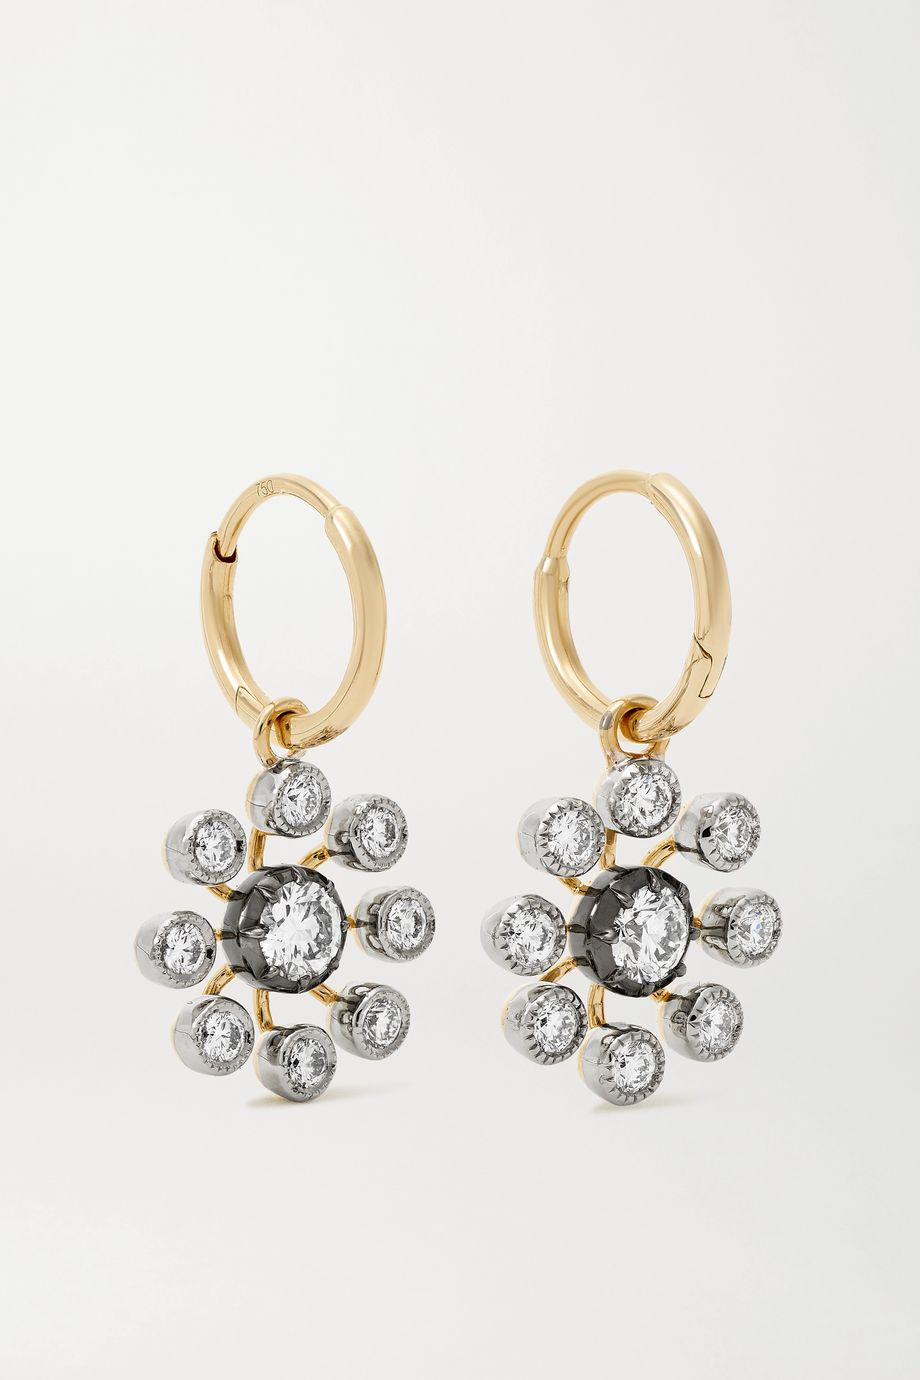 Jessica McCormack Gypset Bloom 18-karat blackened white and yellow gold diamond earrings